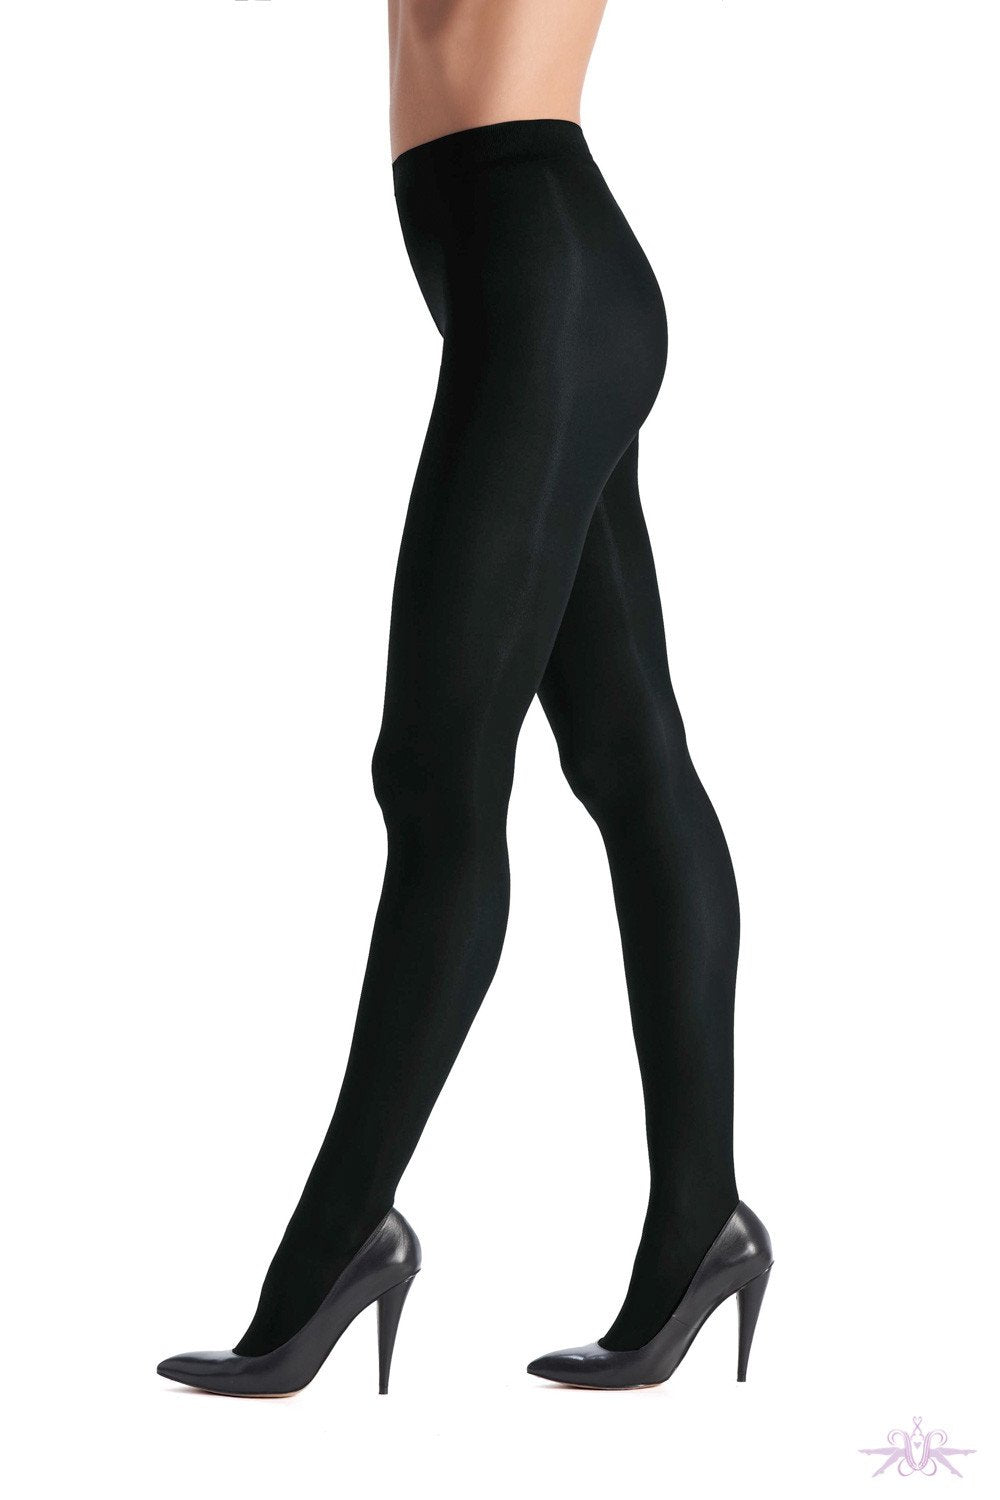 Oroblu All Colours 50 Opaque Tight - The Hosiery Box